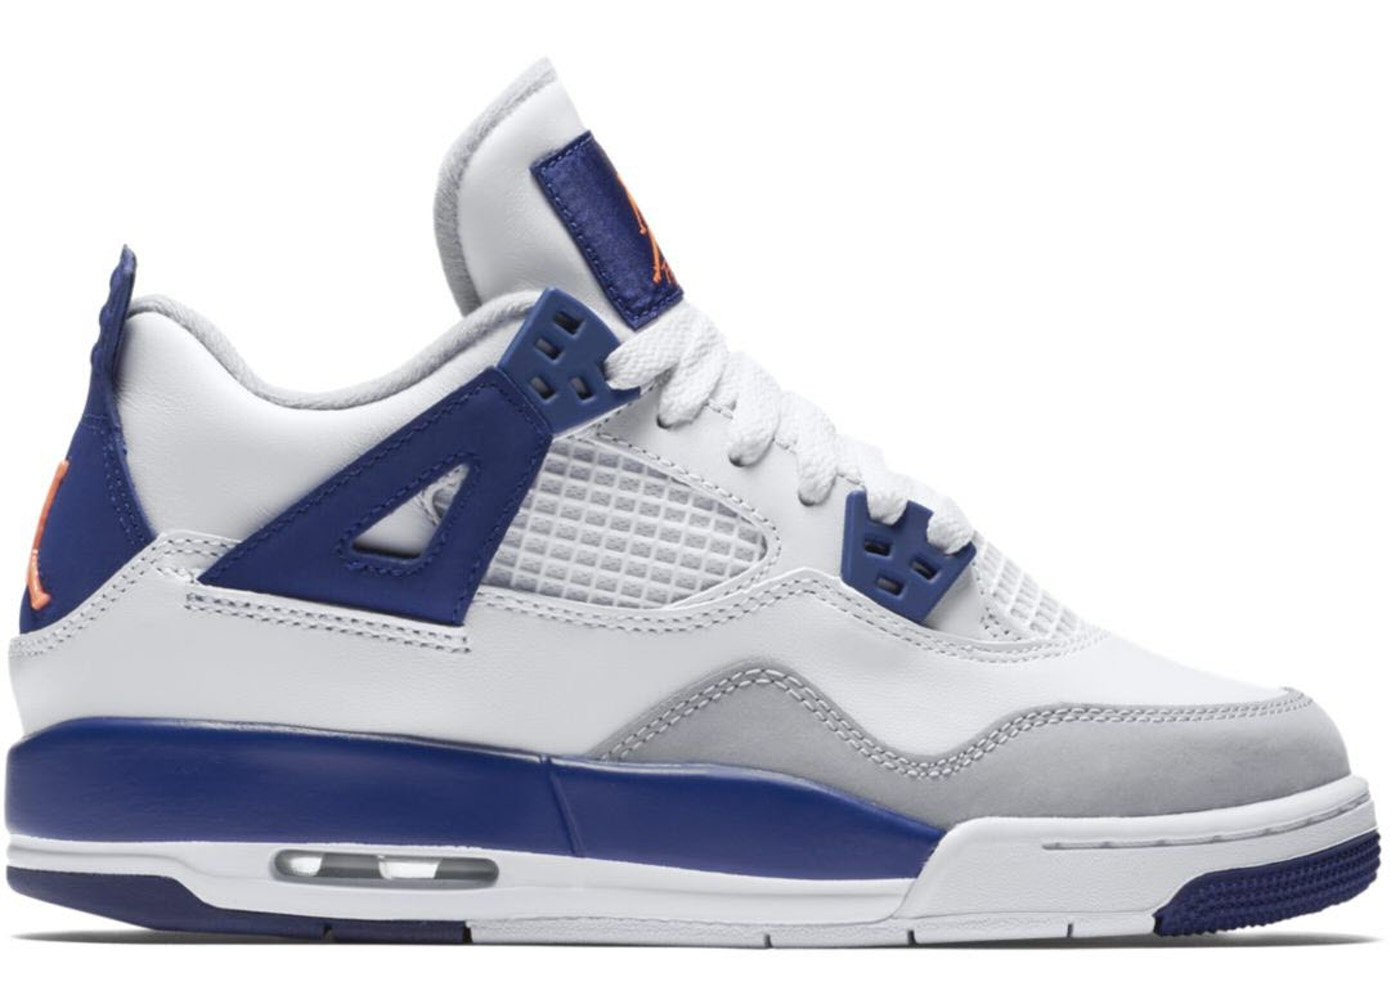 c3fbb0be Jordan 4 Retro Deep Royal Blue (GS) - 487724-132